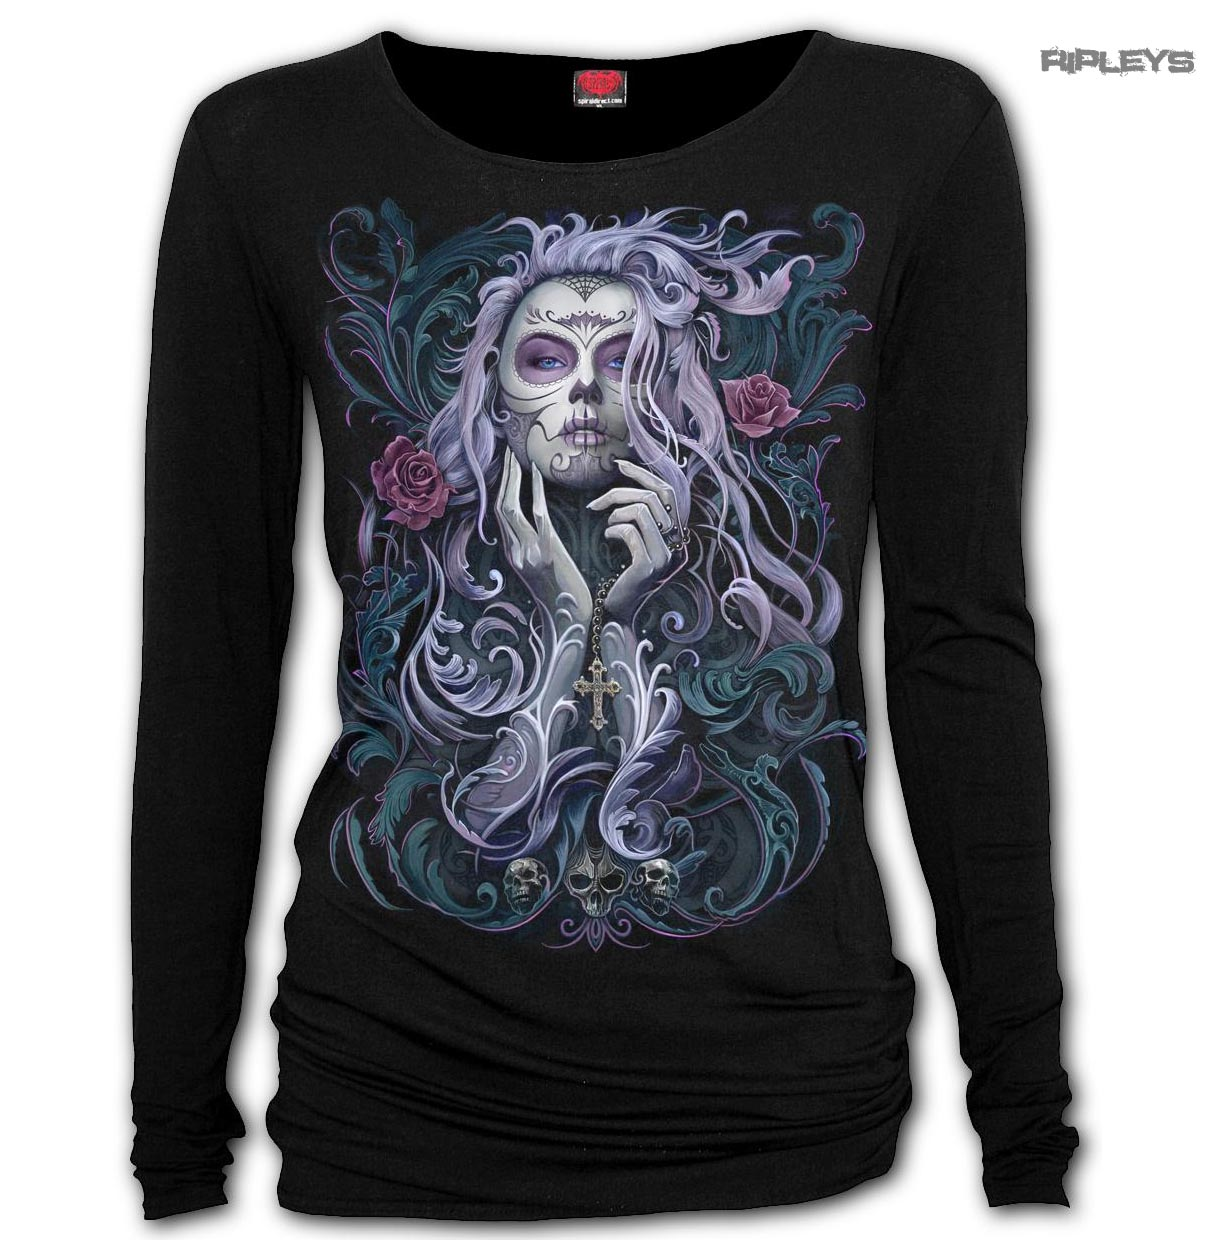 SPIRAL-Ladies-Black-Goth-ROCOCO-SKULL-Day-of-The-Dead-L-Sleeve-Top-All-Sizes thumbnail 6